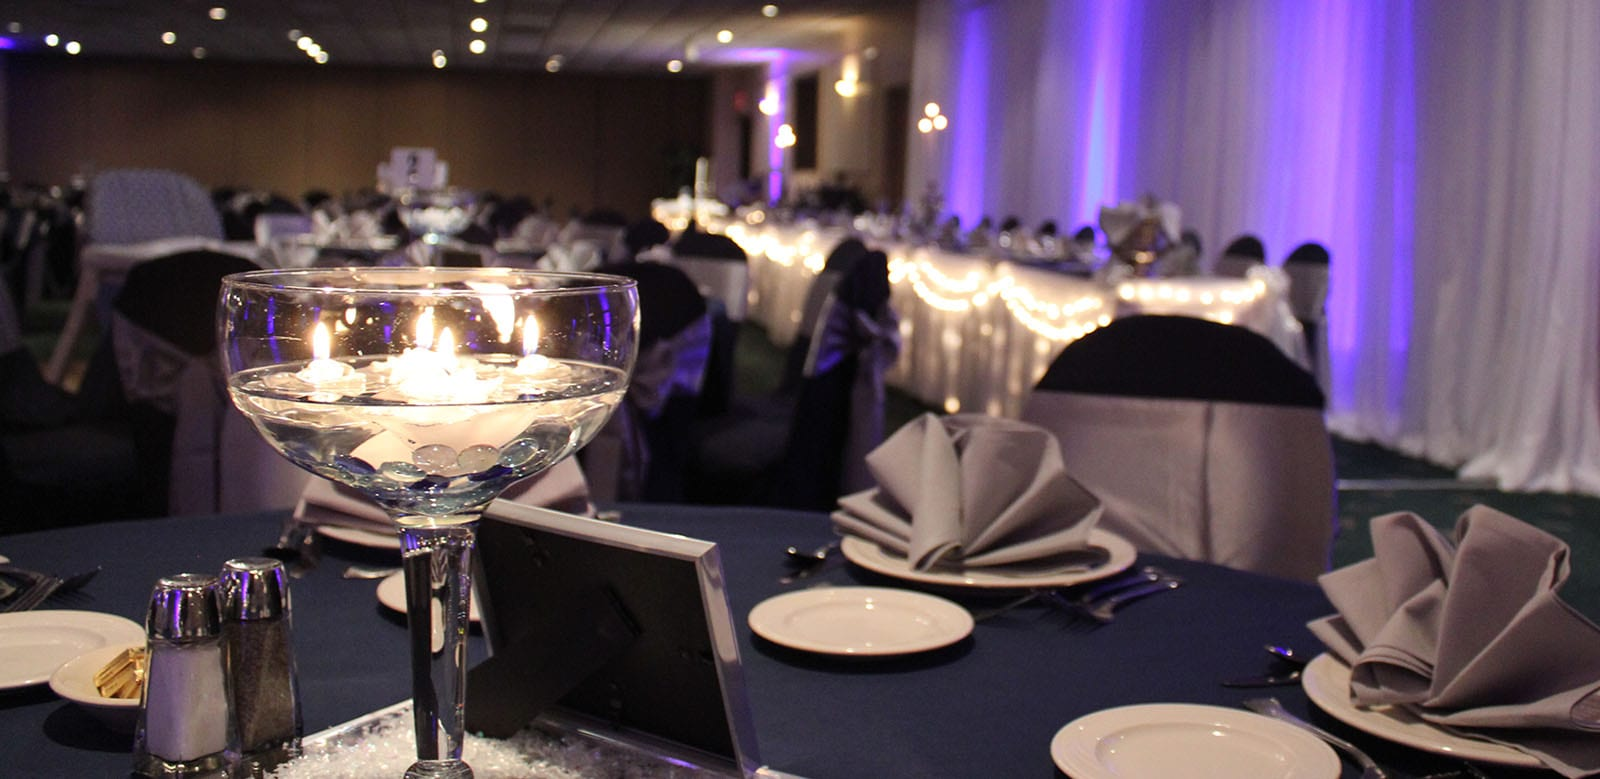 Candle centerpiece at wedding banquet table